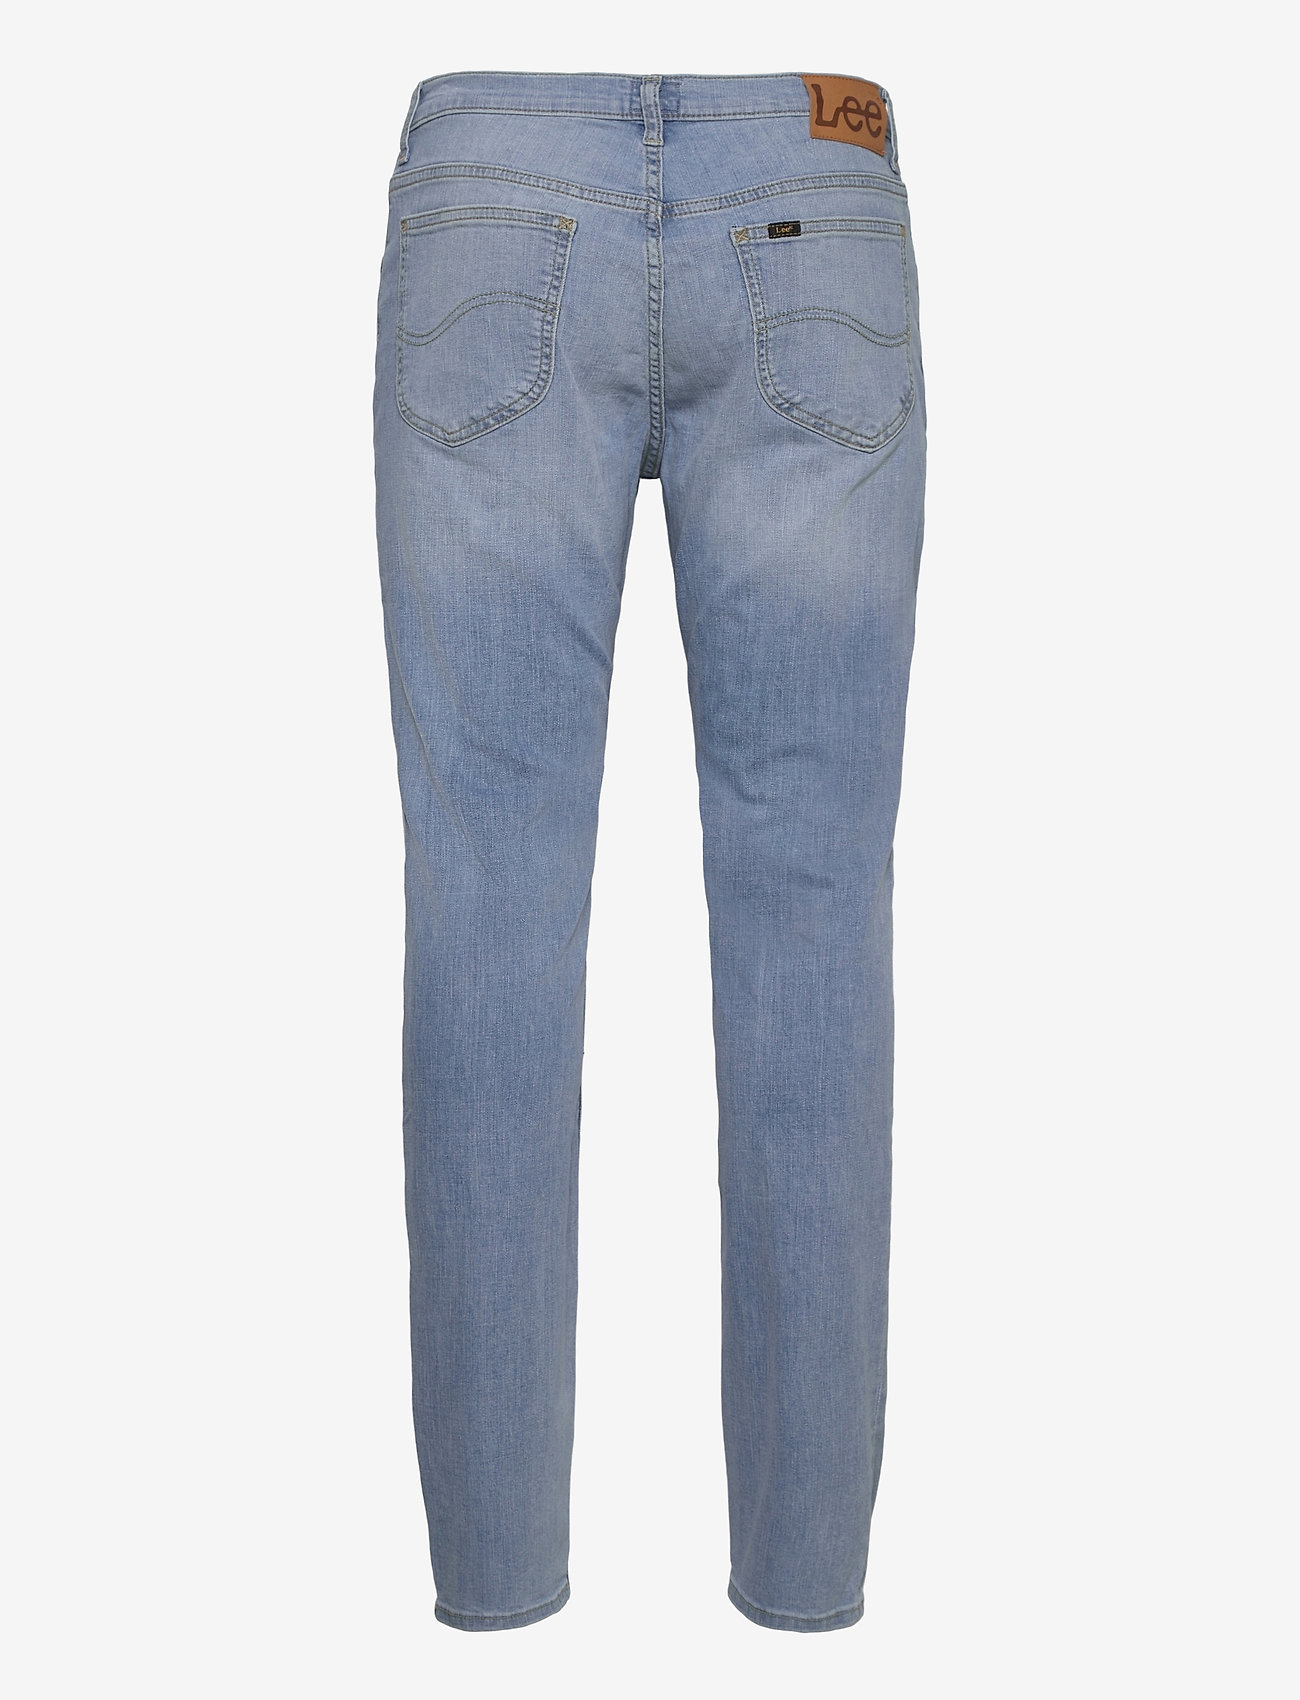 Lee Jeans - RIDER - slim jeans - bleached cody - 1